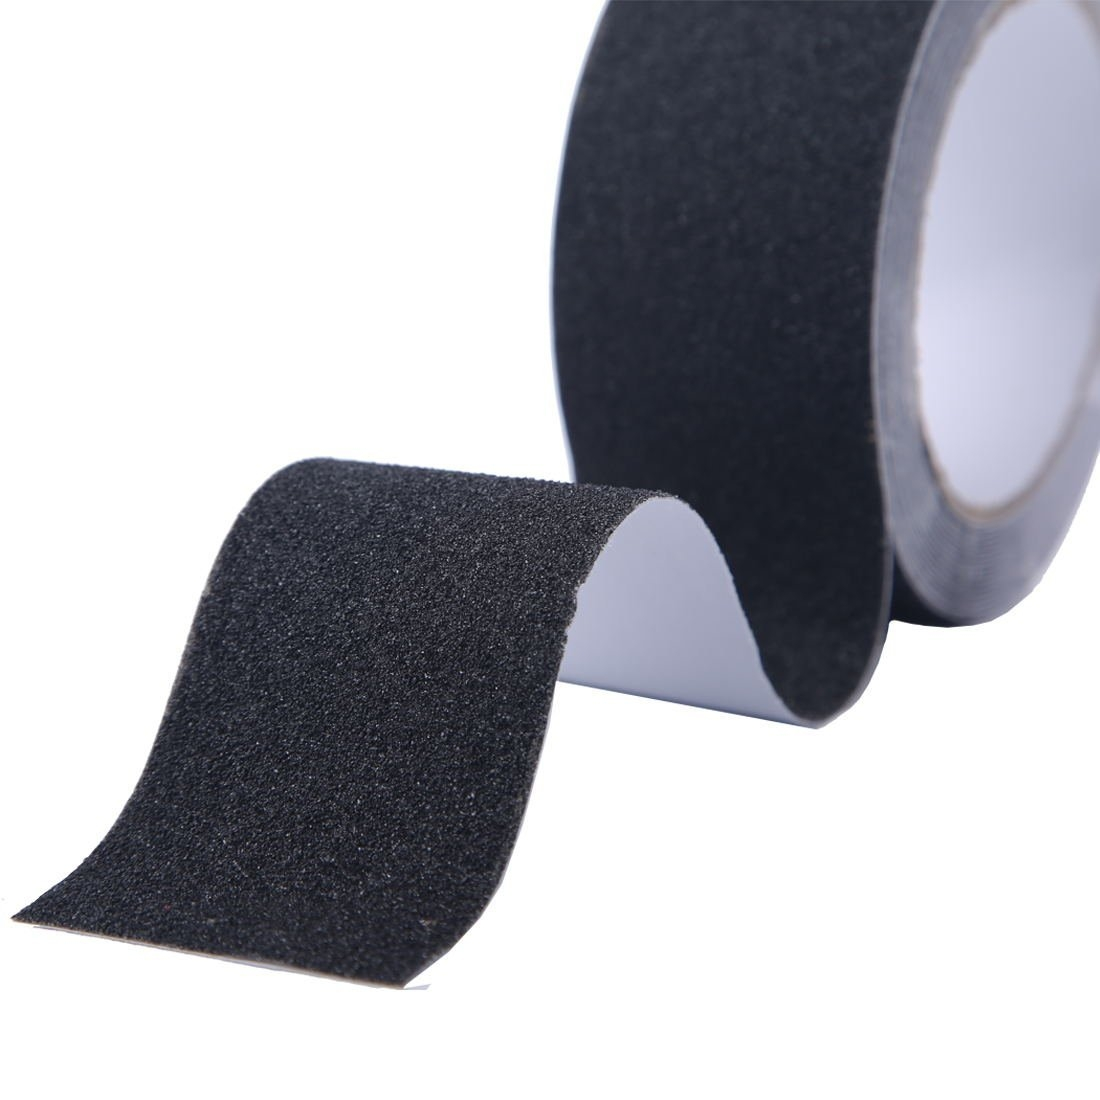 Cheap Stair Safety Tape Find Stair Safety Tape Deals On Line At | Outdoor Adhesive Stair Treads | Indoor Outdoor | Bullnose Carpet | Flooring | Carpet Stair | Tape Adhesive